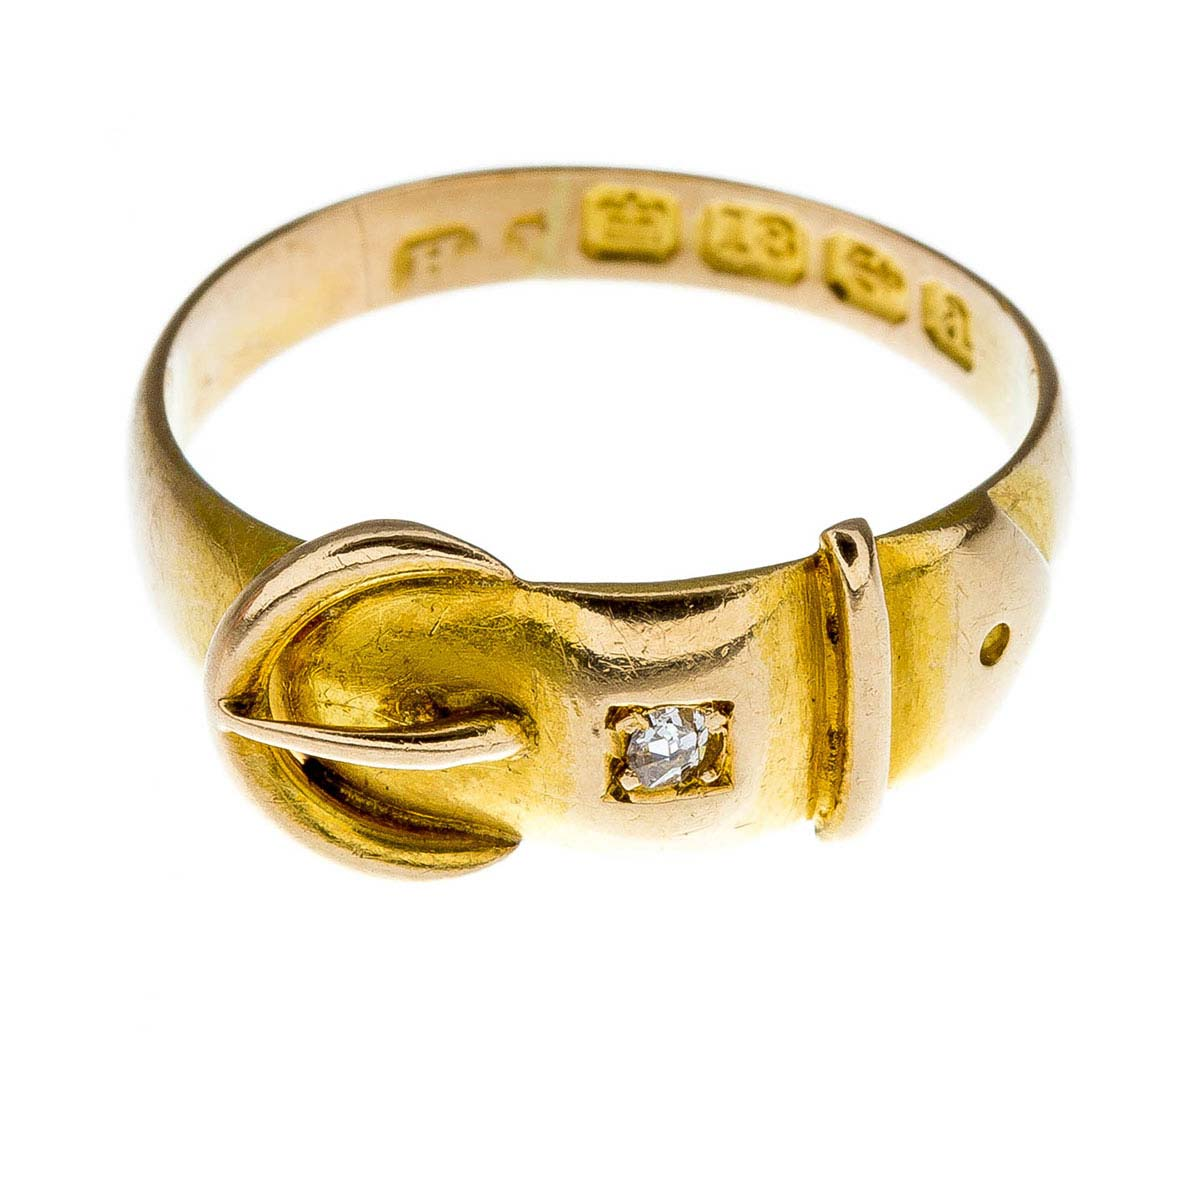 Antique Victorian gold & diamond buckle ring